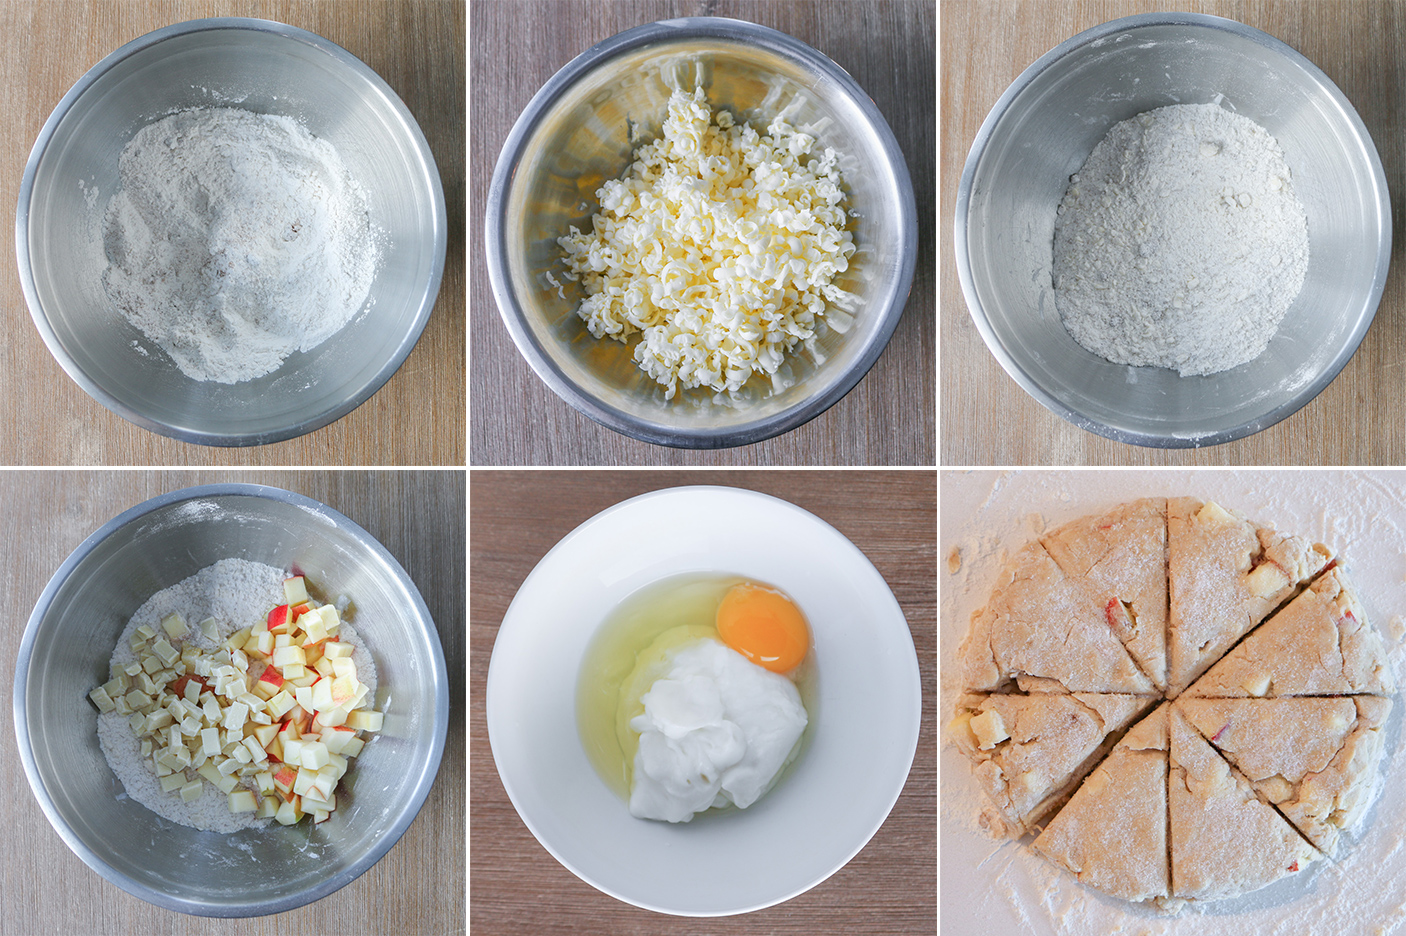 Apple White Chocolate Scones step by step picture guide